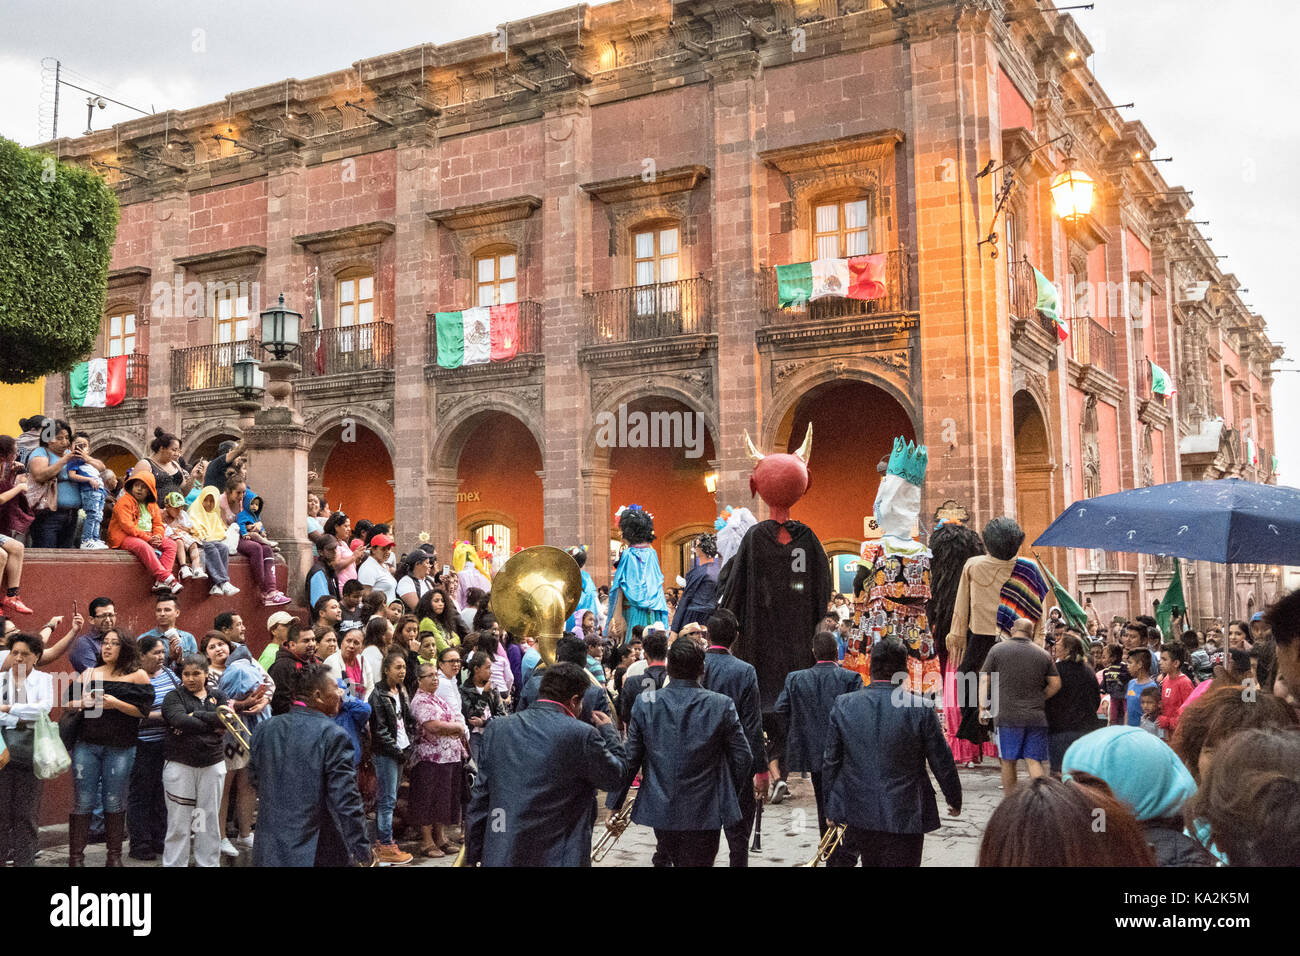 A marching band follows a parade of giant paper-mache puppets called mojigangas in a procession through the city - Stock Image